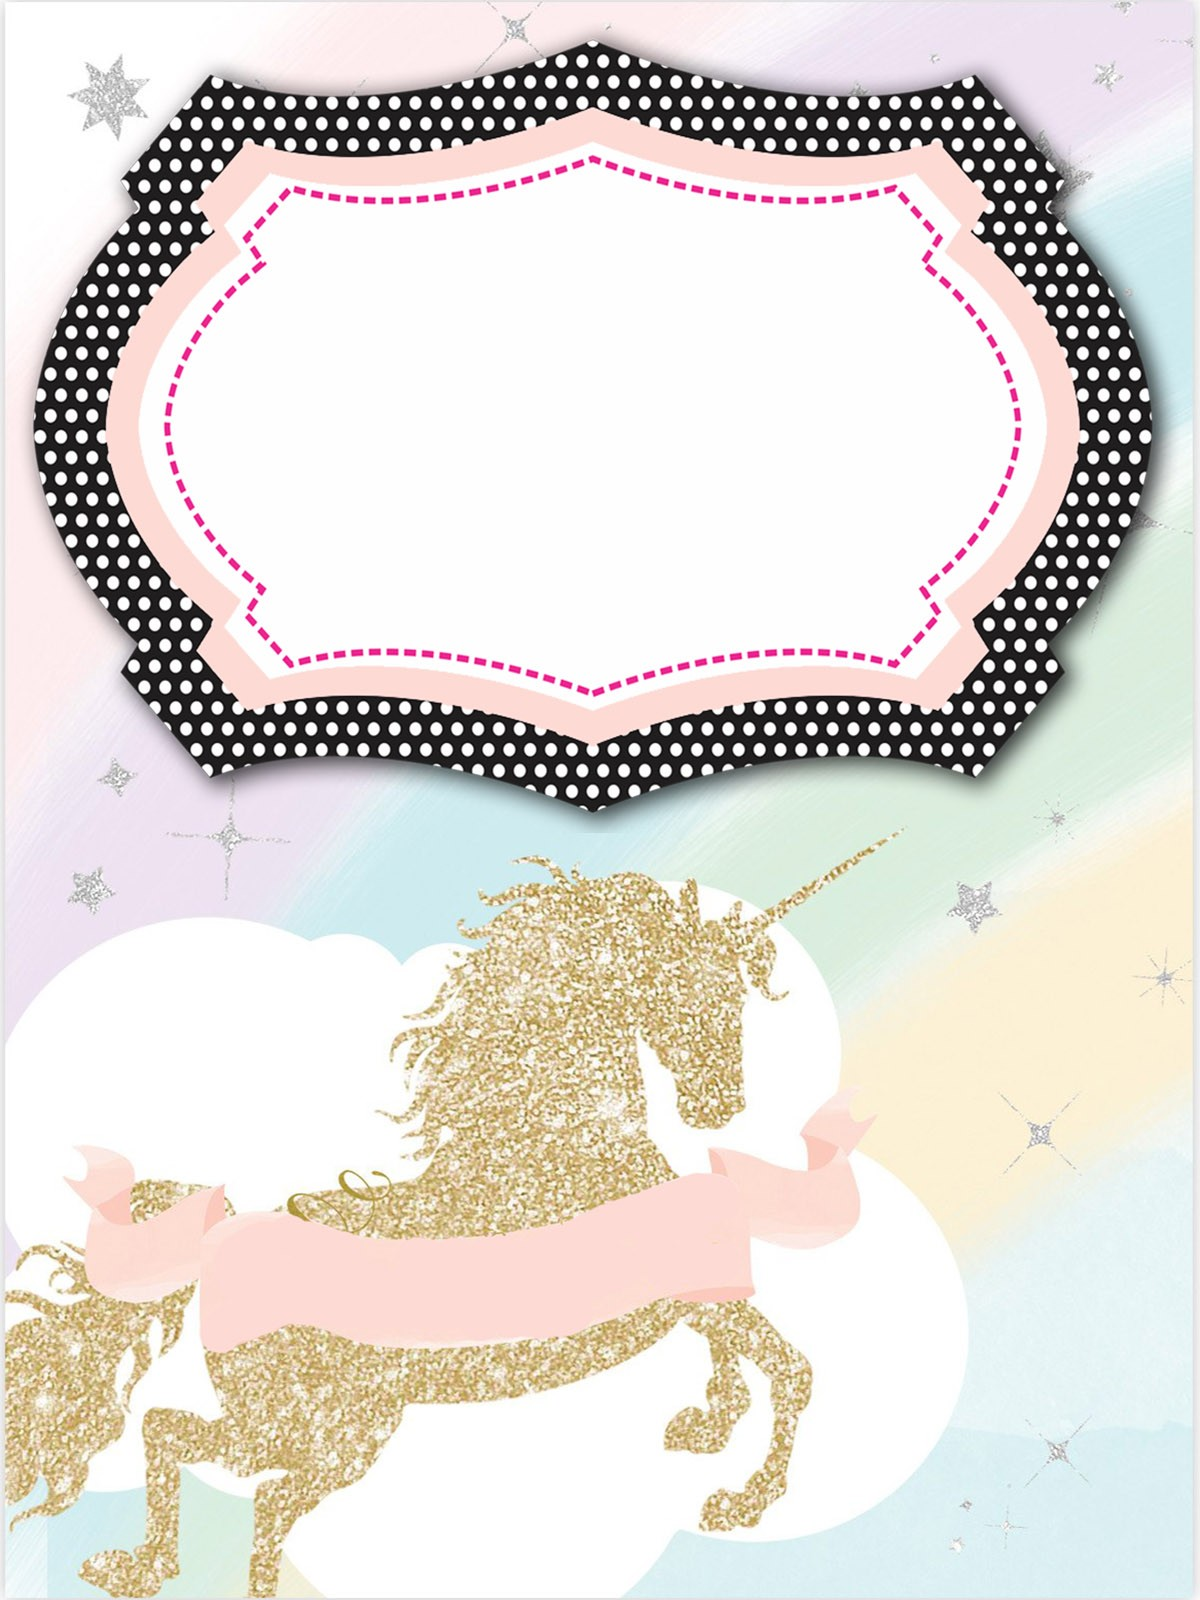 graphic regarding Free Printable Unicorn Template identify Unicorn Invitation Templates - Crafted toward satisfy the